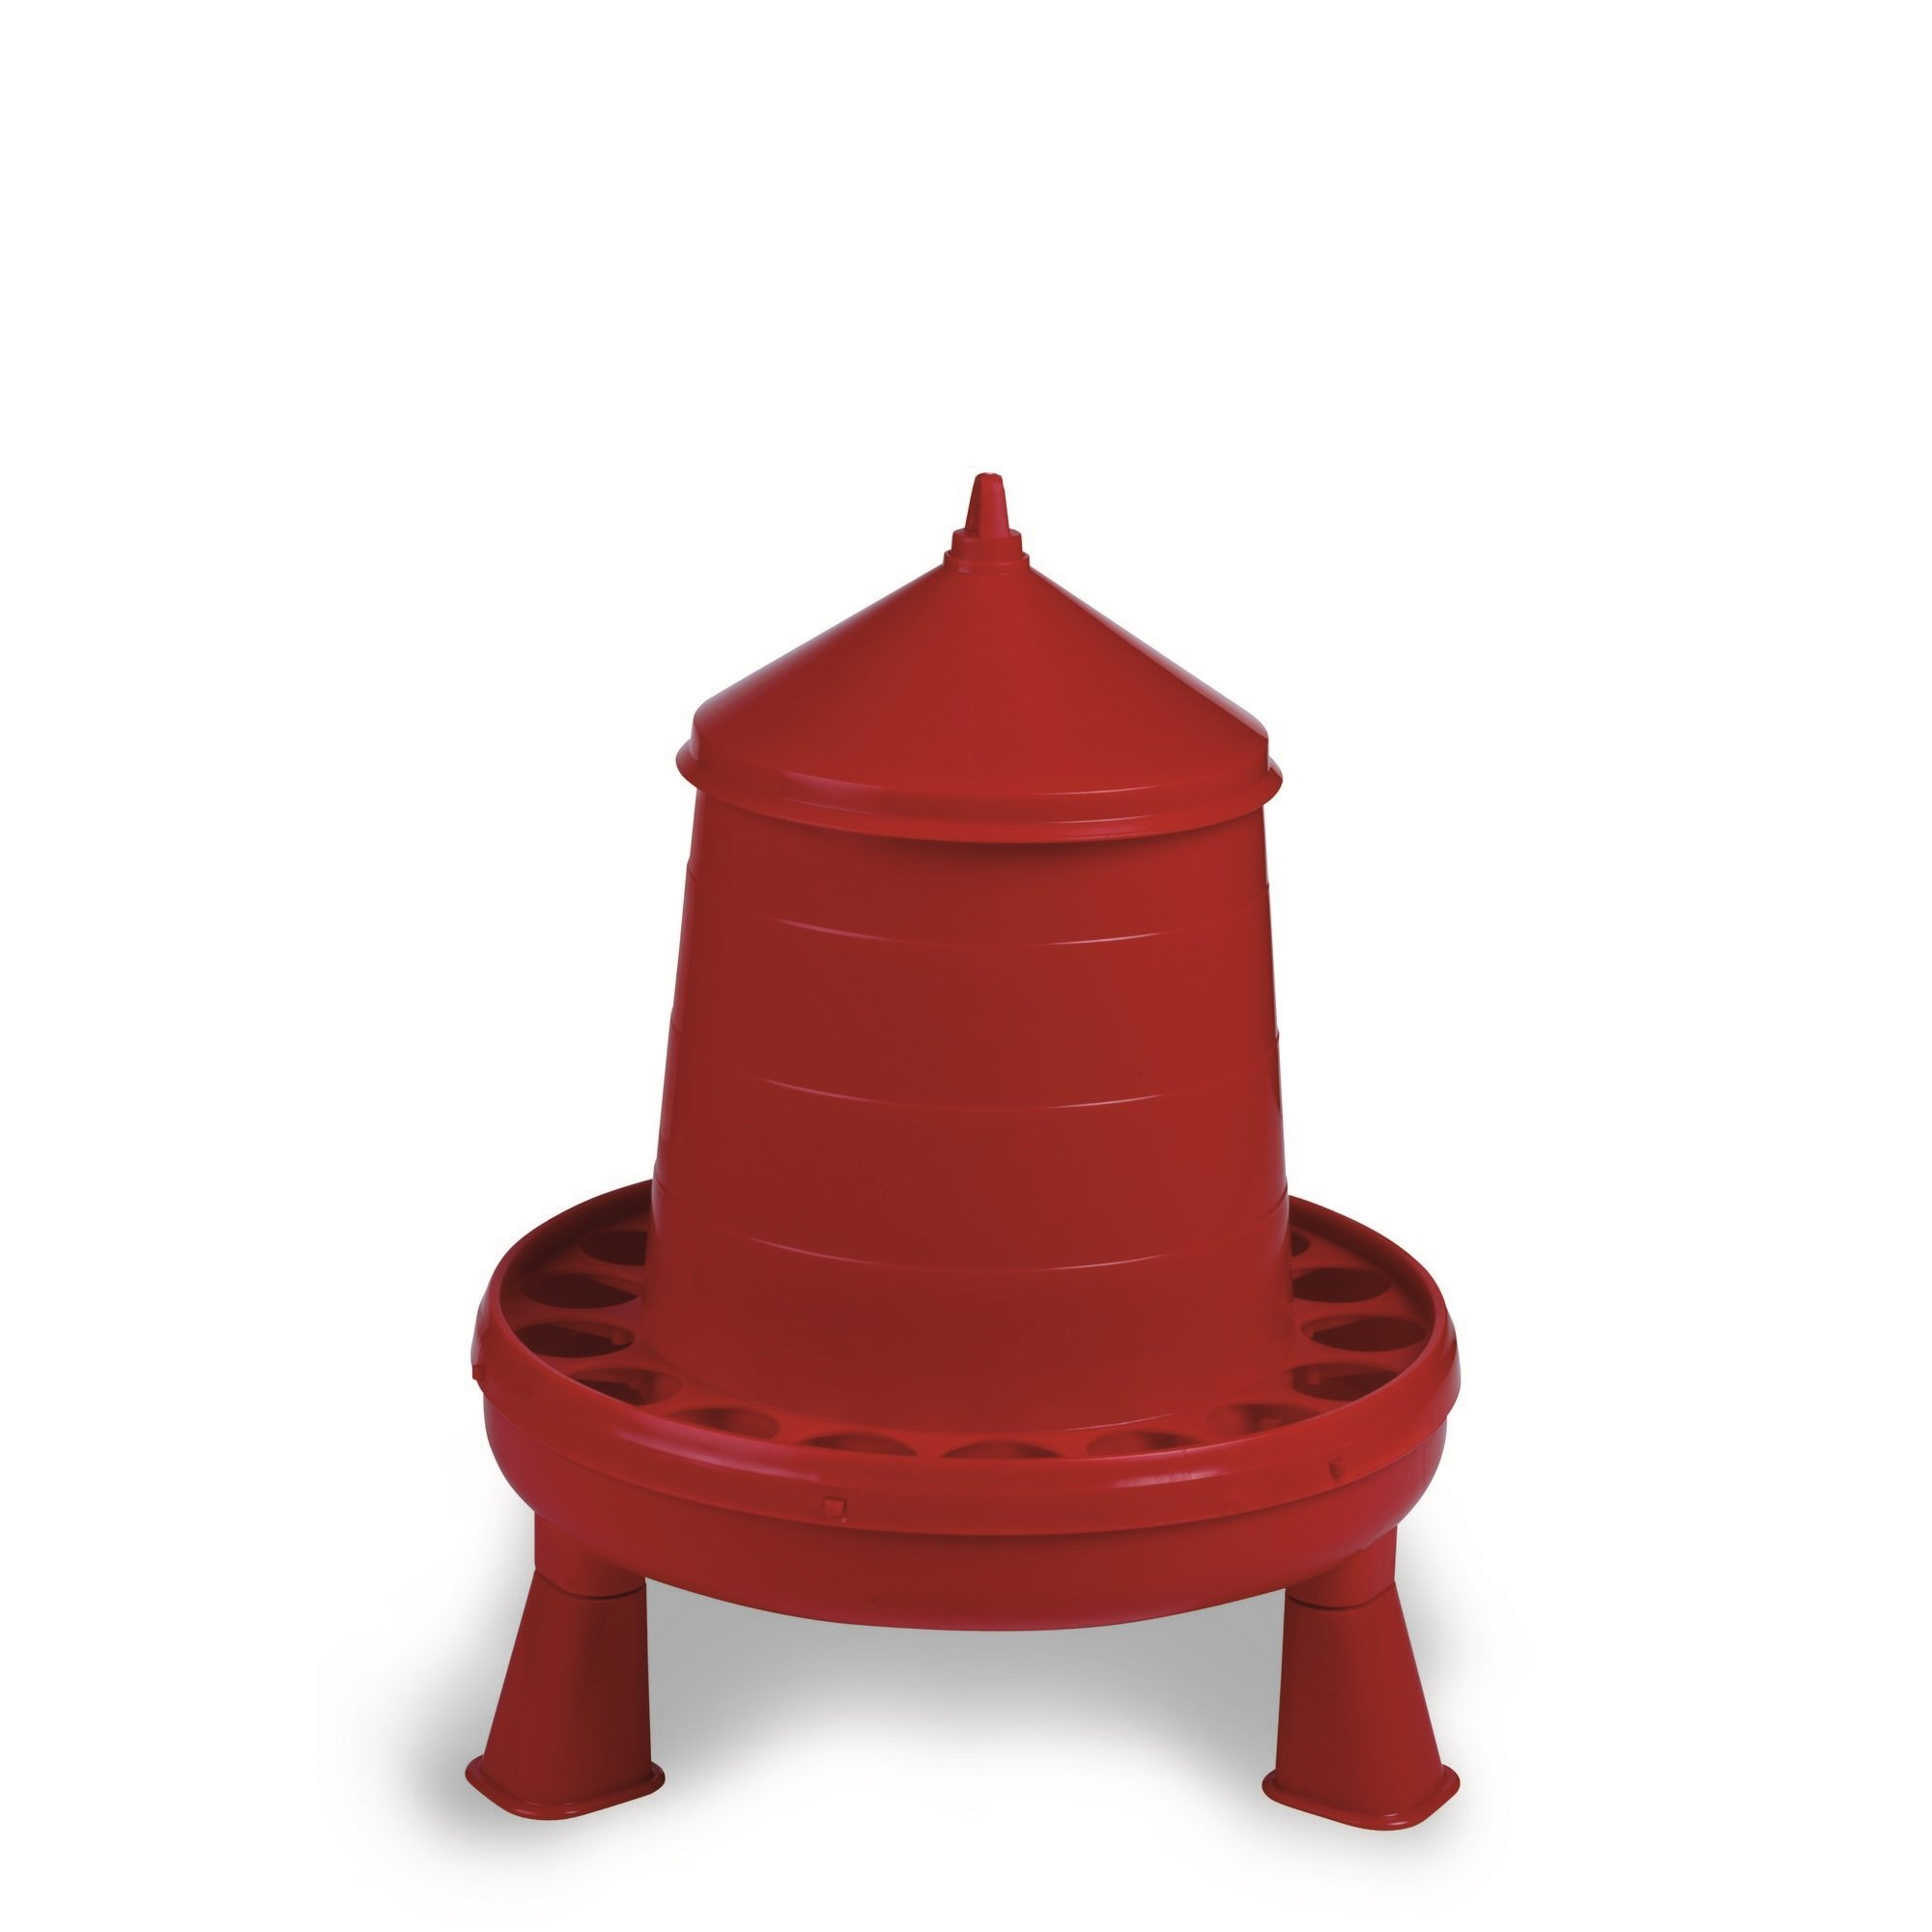 Gaun Plastic Poultry Feeder With Legs (17.6 lbs) (Red) by Gaun